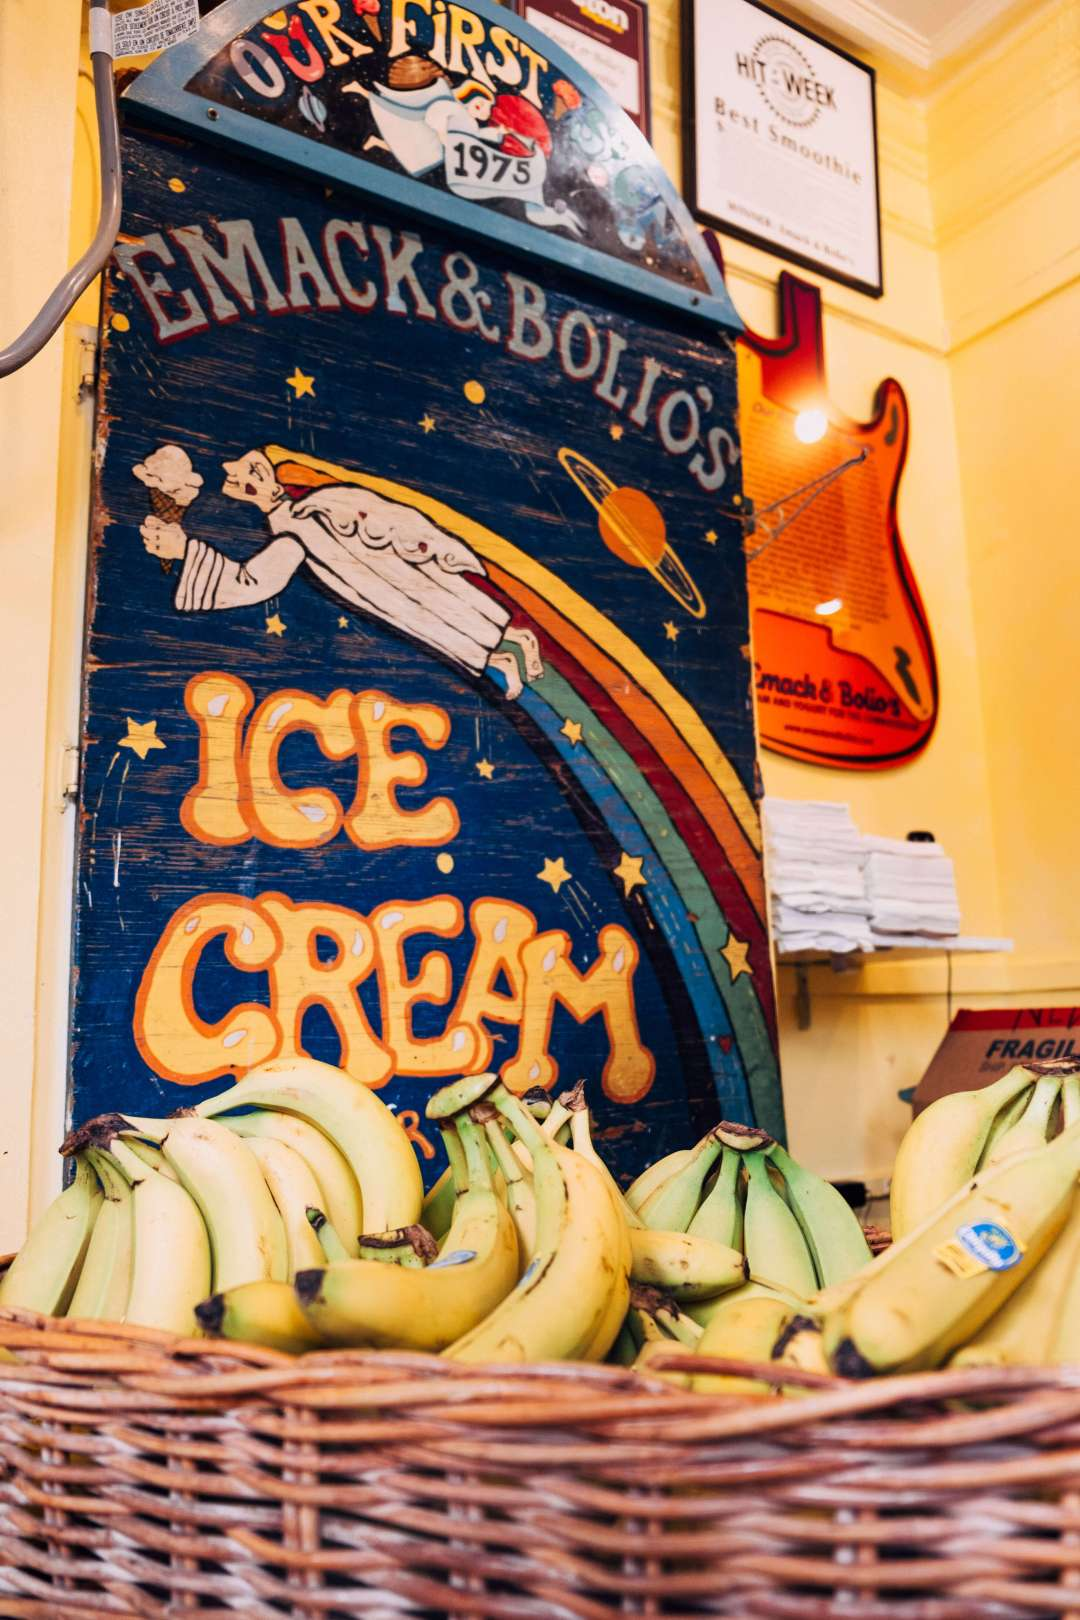 Emack and Bolio's Ice Cream and Smoothies sign with bananas